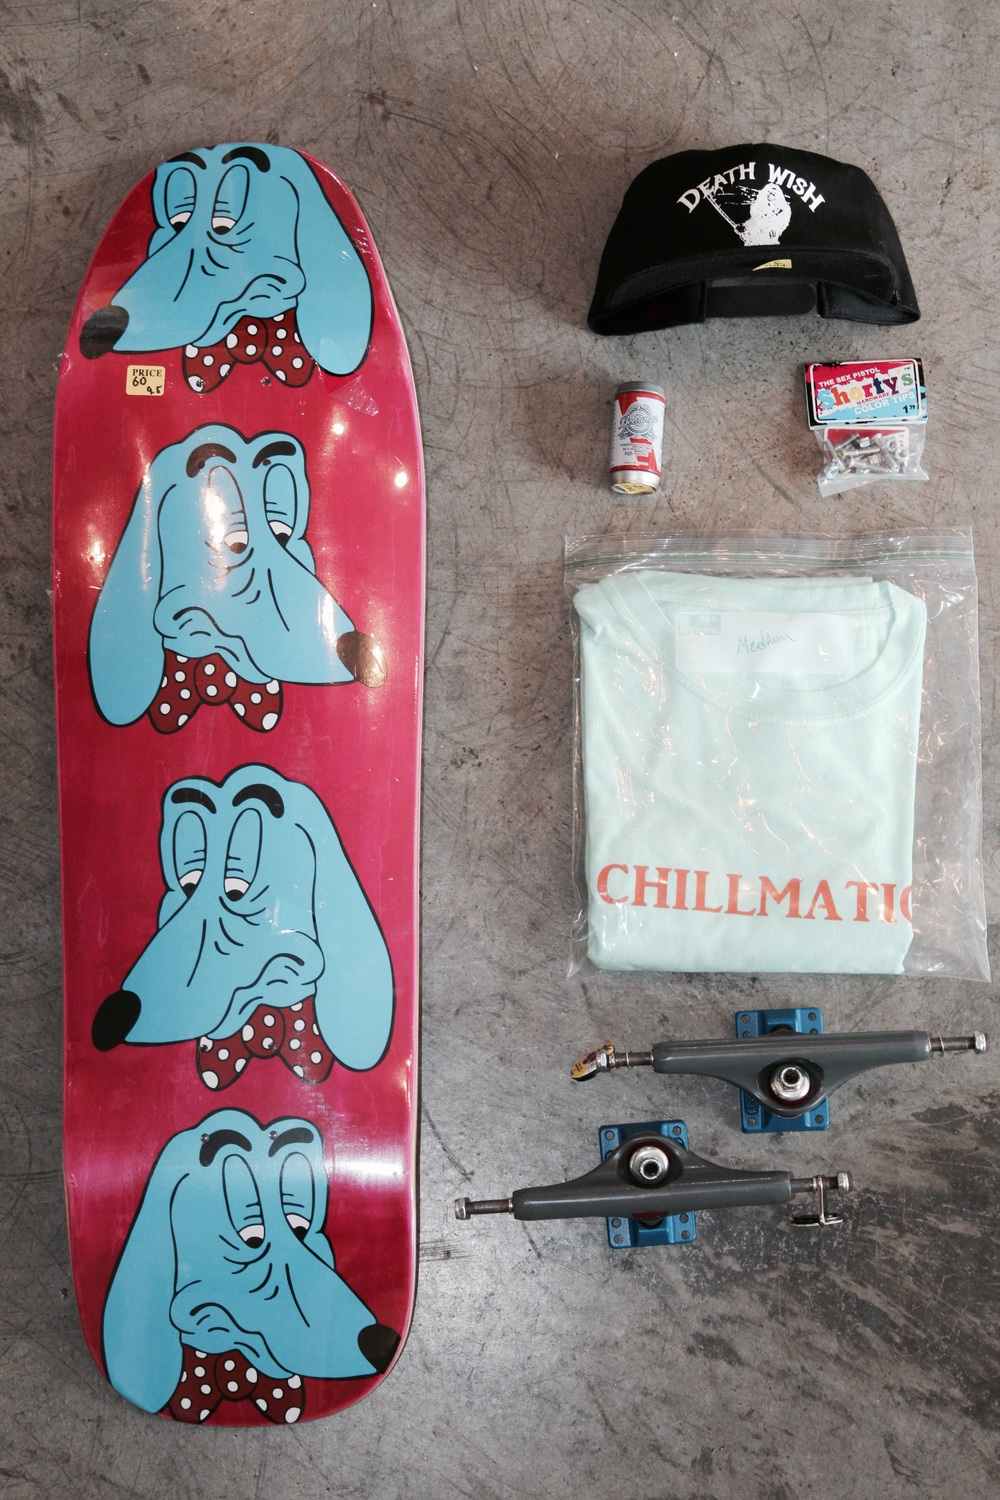 Weekend Pack 8/5 Tired - 9.5 deck Deathwish hat Beerings Abec 5 bearings Chillmatic t-shirt Shortys Sex Pistols hardware Independent Mark Gonzales trucks 169